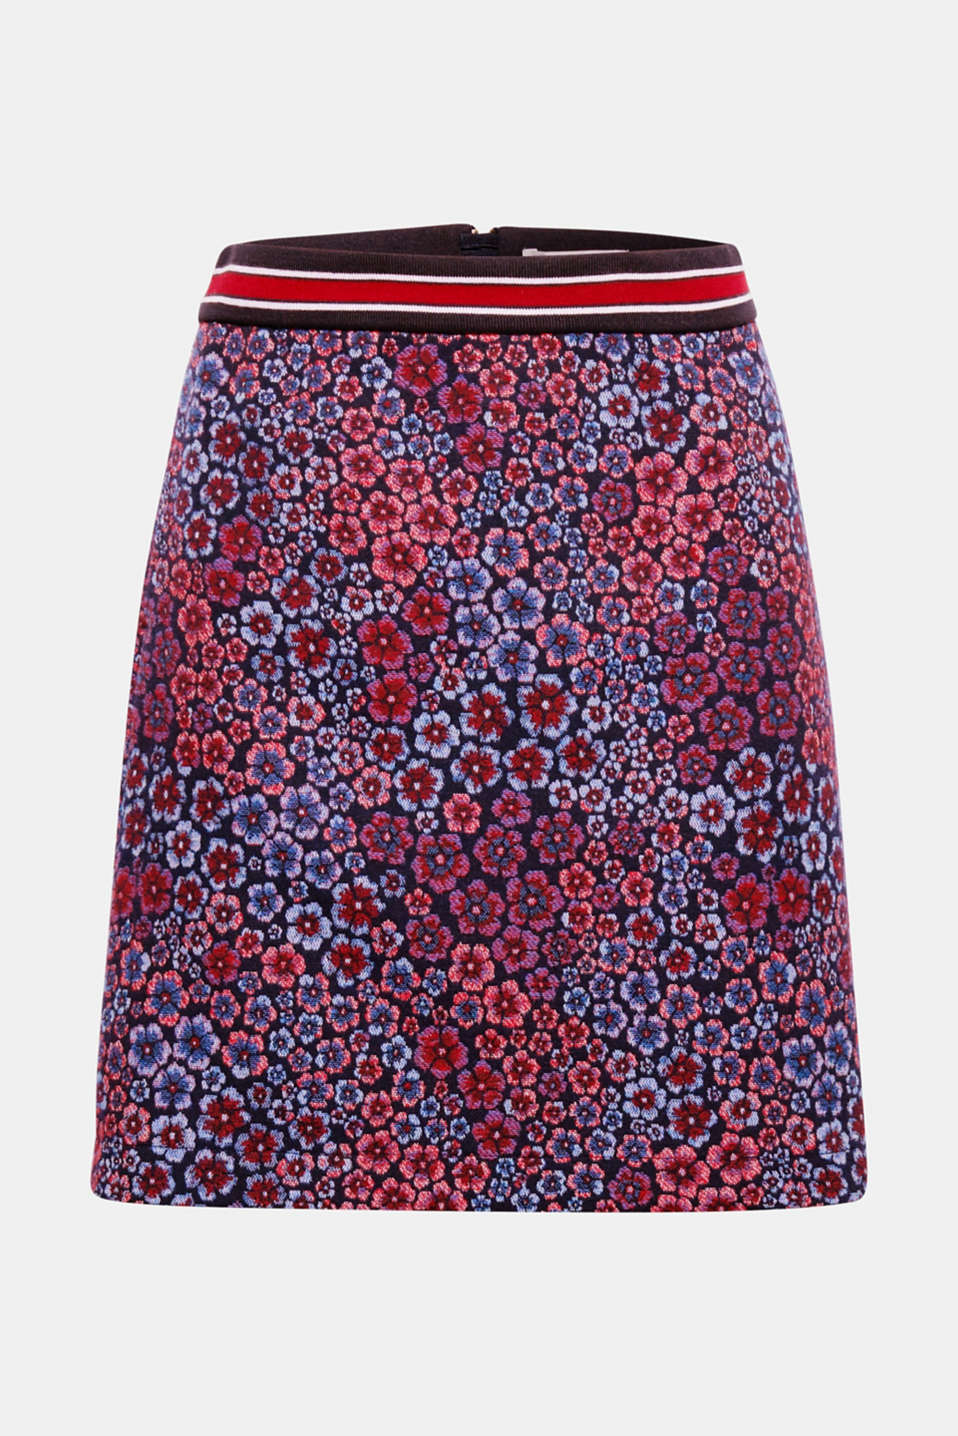 The striped, ribbed waistband combined with a decorative jacquard floral pattern give this short skirt its fashionable look.